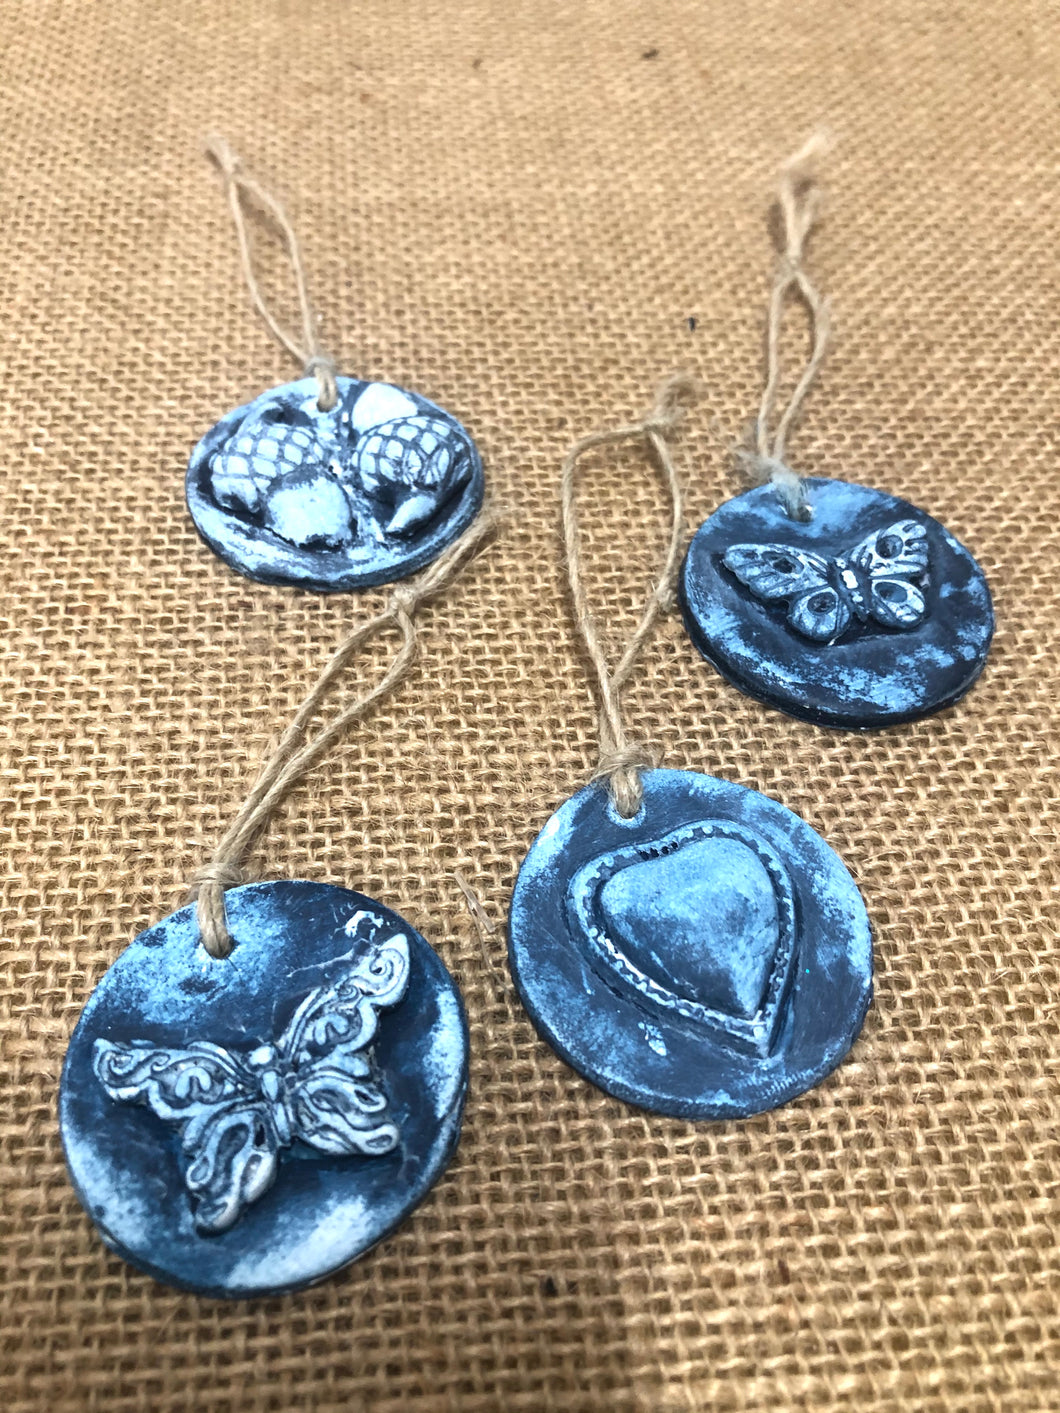 Small Raised Clay Ornaments